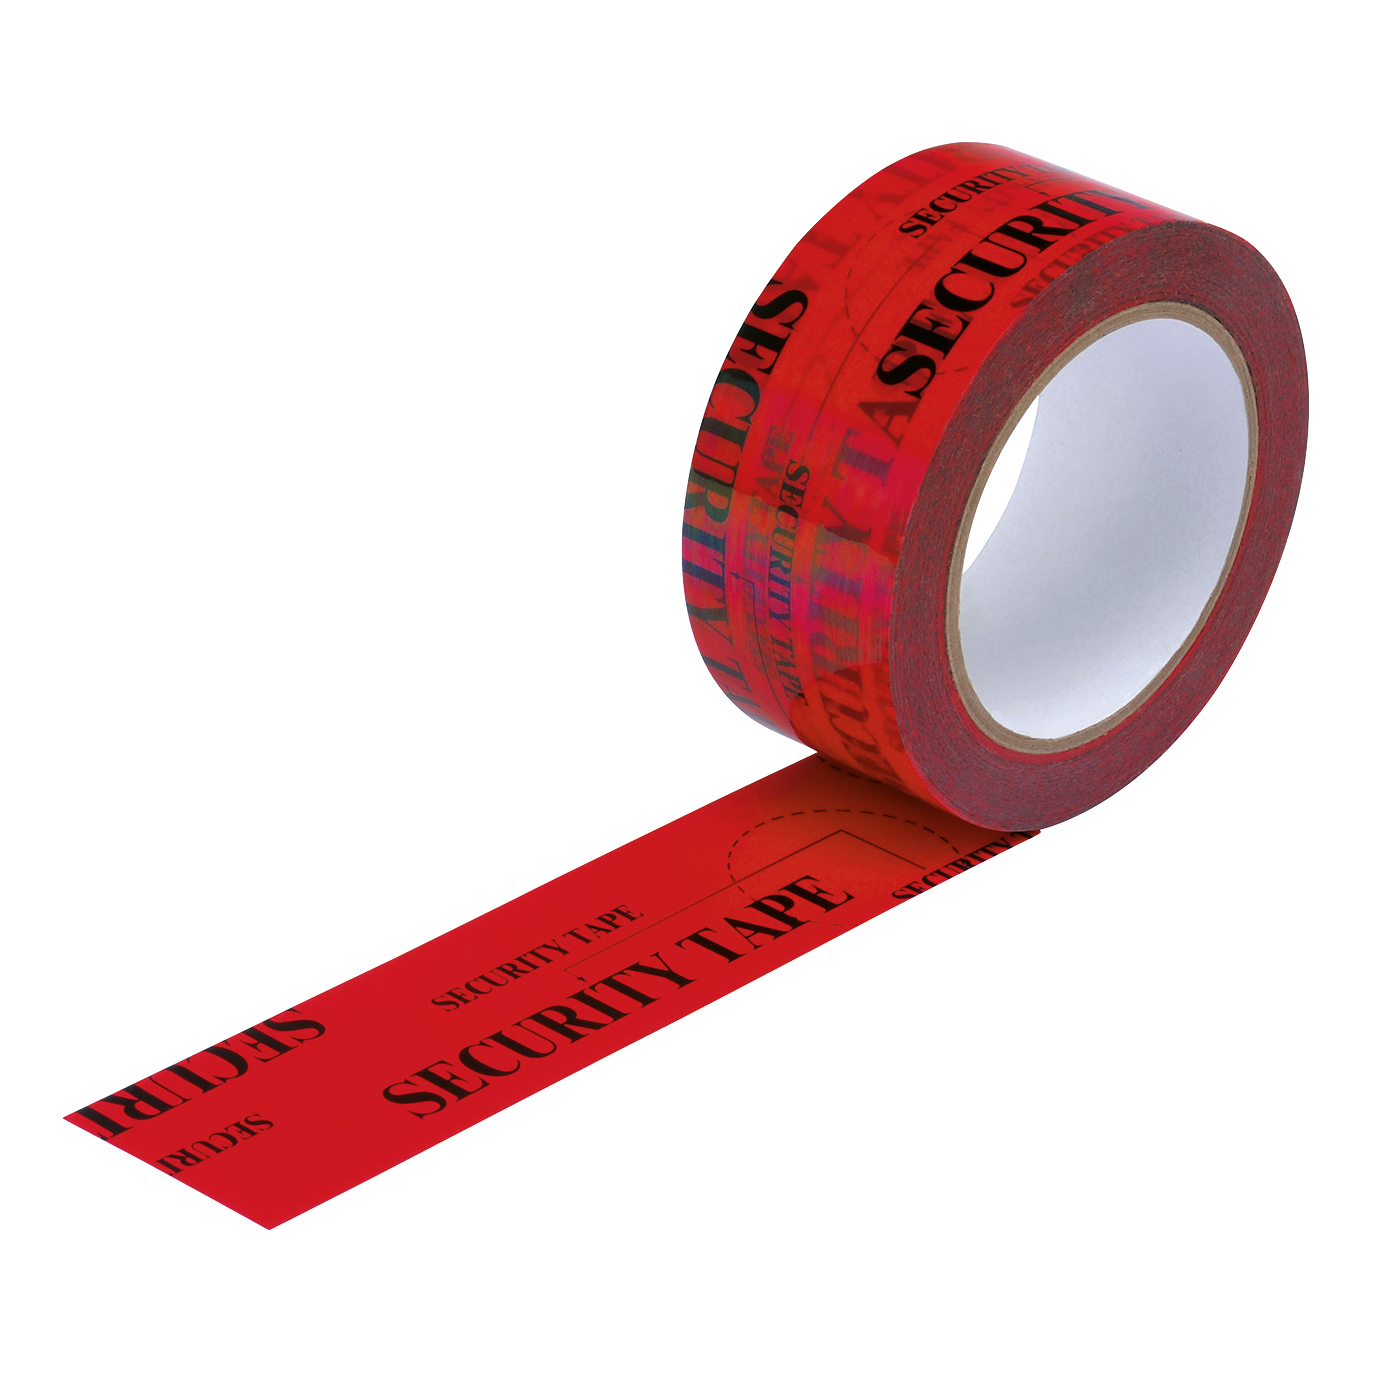 Barrier tapes or chains Security Tape Tamper Evident 48mmx50m Red